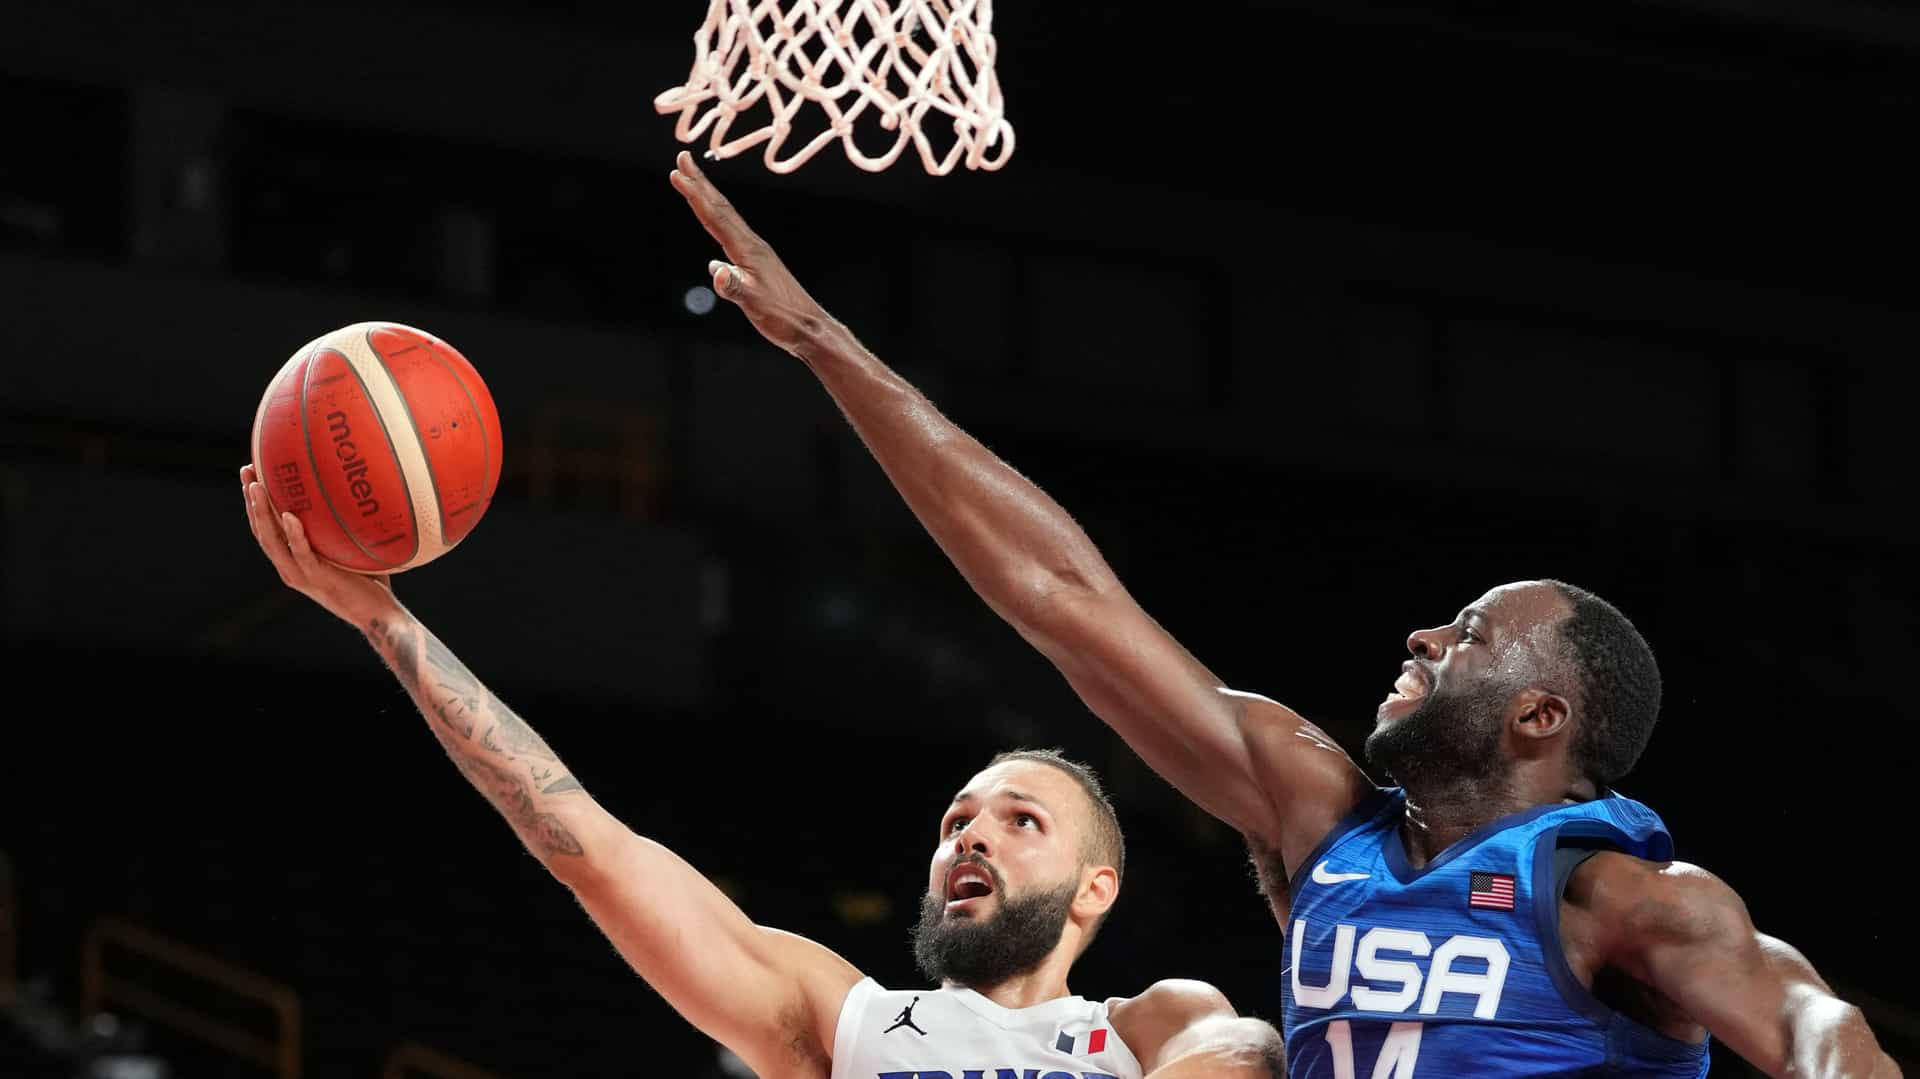 France's Evan Fournier had the better of the U.S. men's basketball team in their opener Sunday....